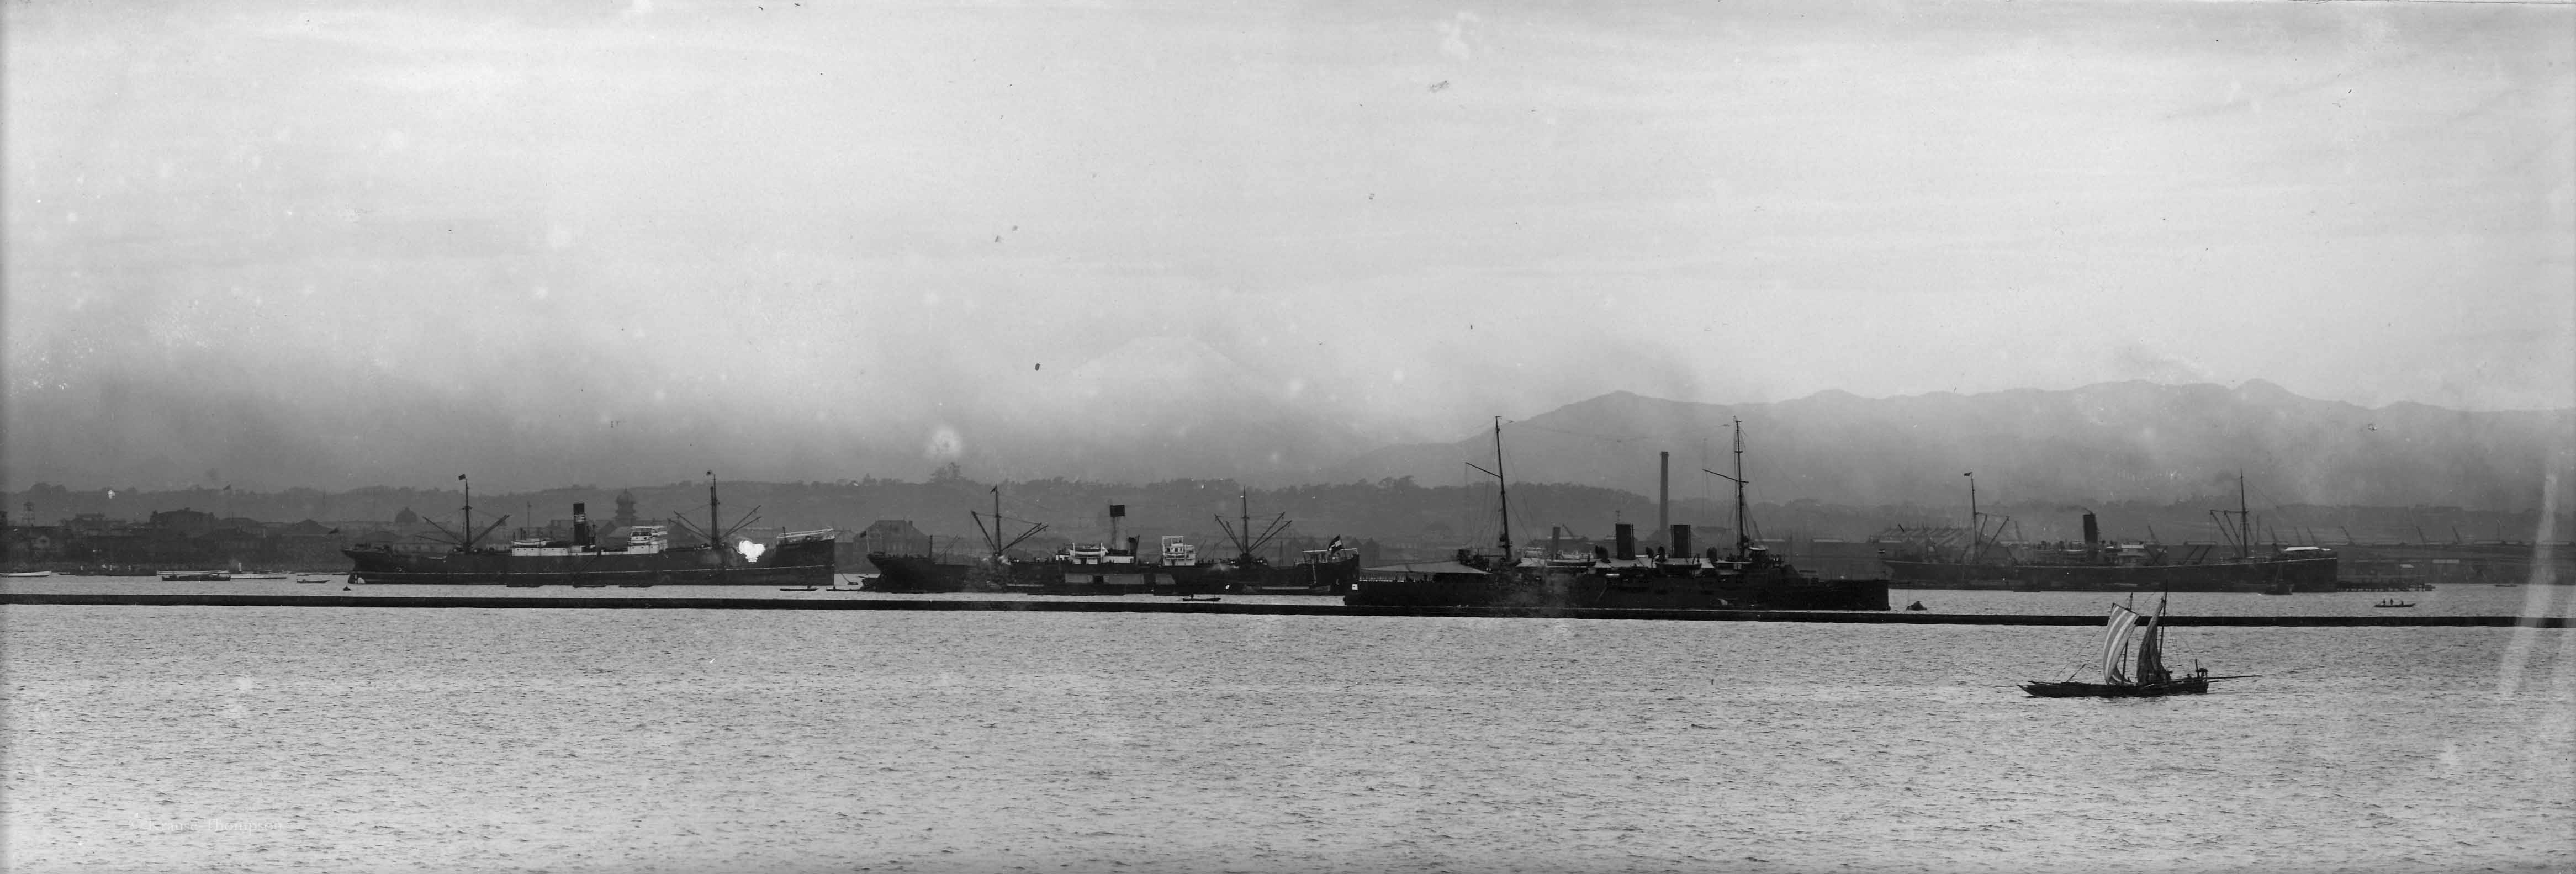 View of ships